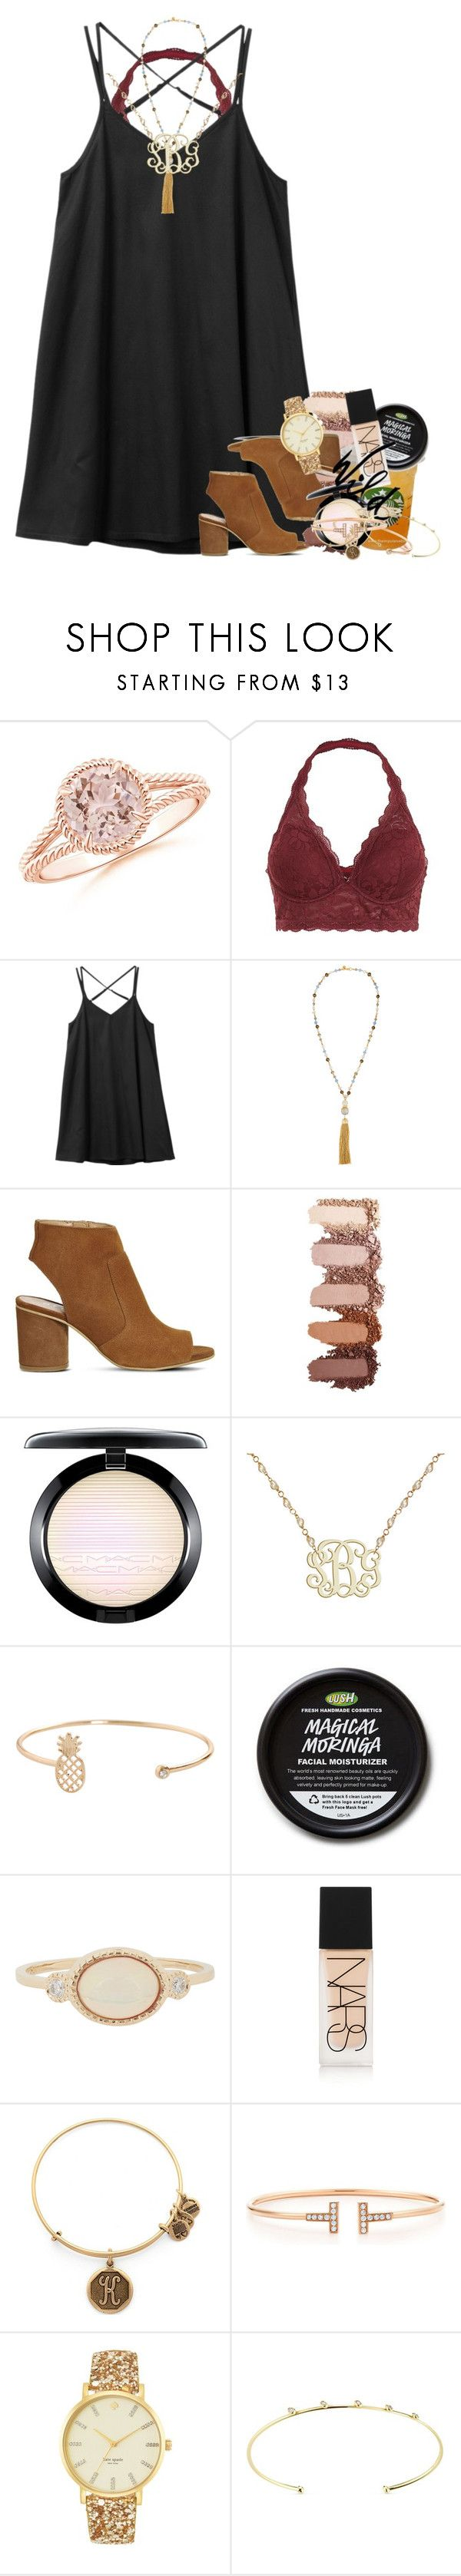 """deciding who's worth your time & energy is hard."" by ellaswiftie13 on Polyvore featuring RVCA, Lydell NYC, Office, MAC Cosmetics, Humble Chic, Jennie Kwon, NARS Cosmetics, Alex and Ani, Tiffany & Co. and Kate Spade"